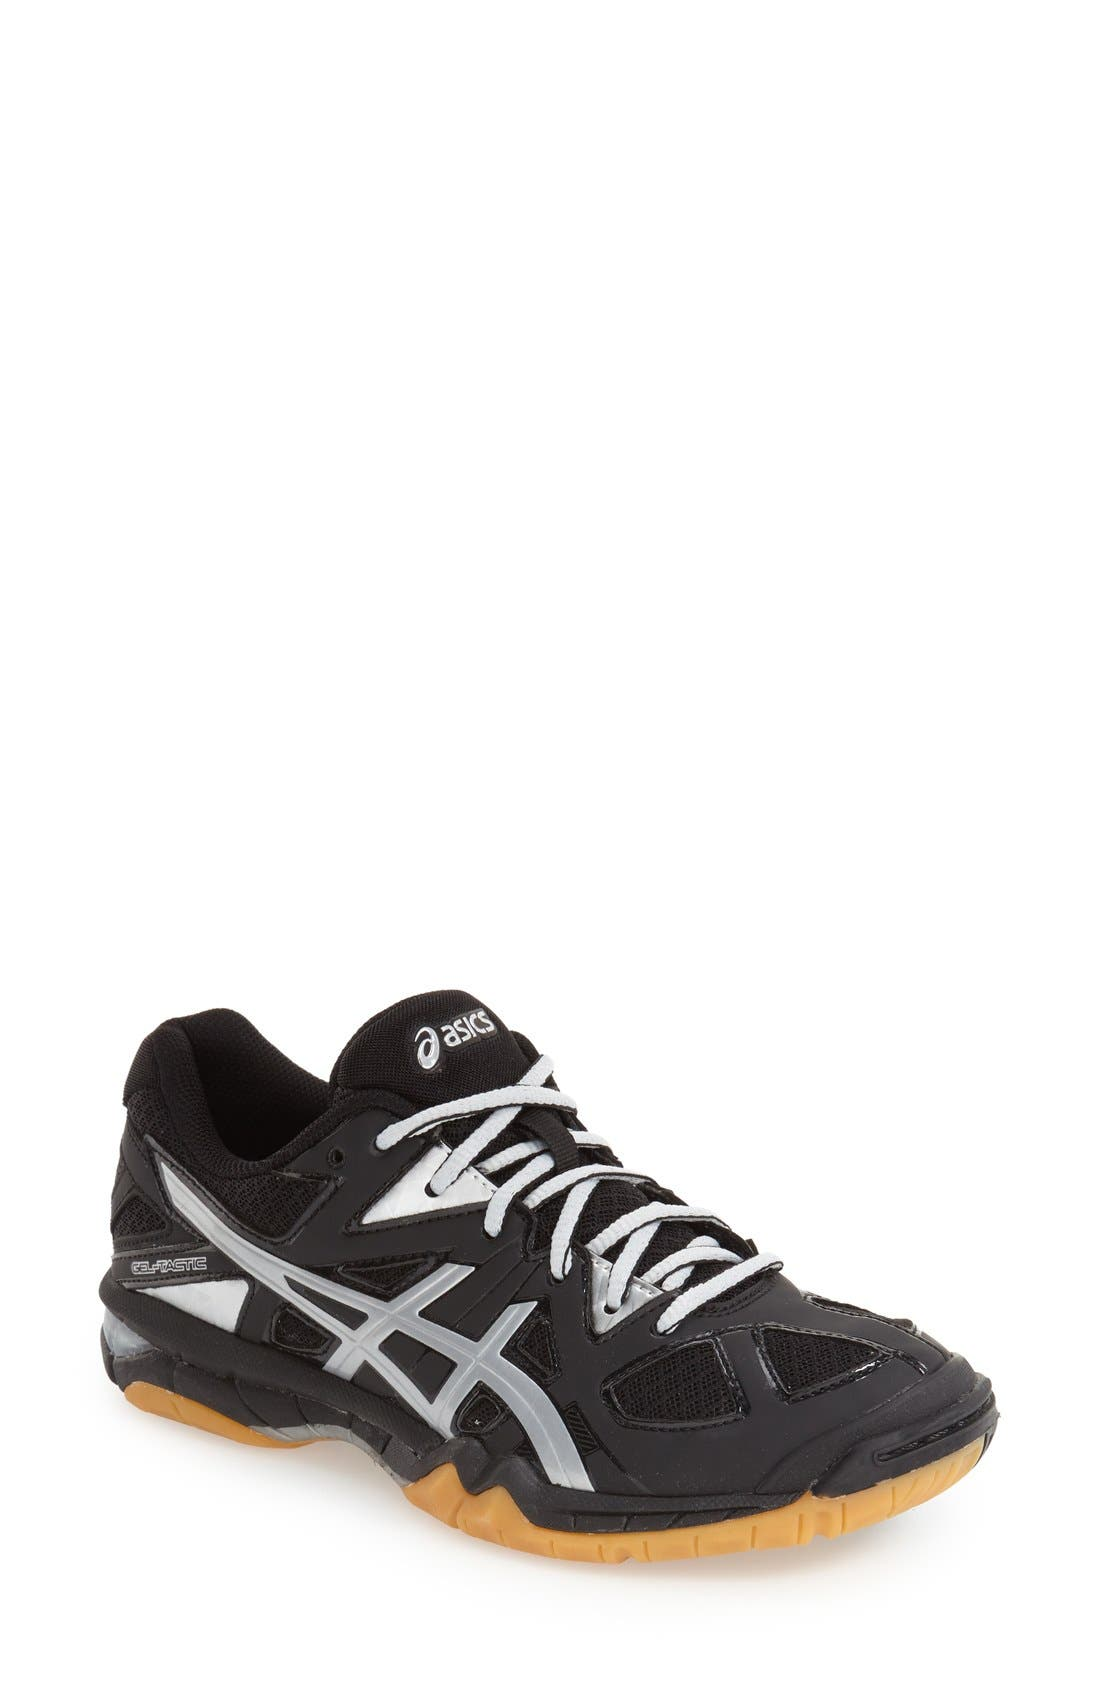 Main Image - ASICS® 'GEL-Tactic' Volleyball Shoe (Women)